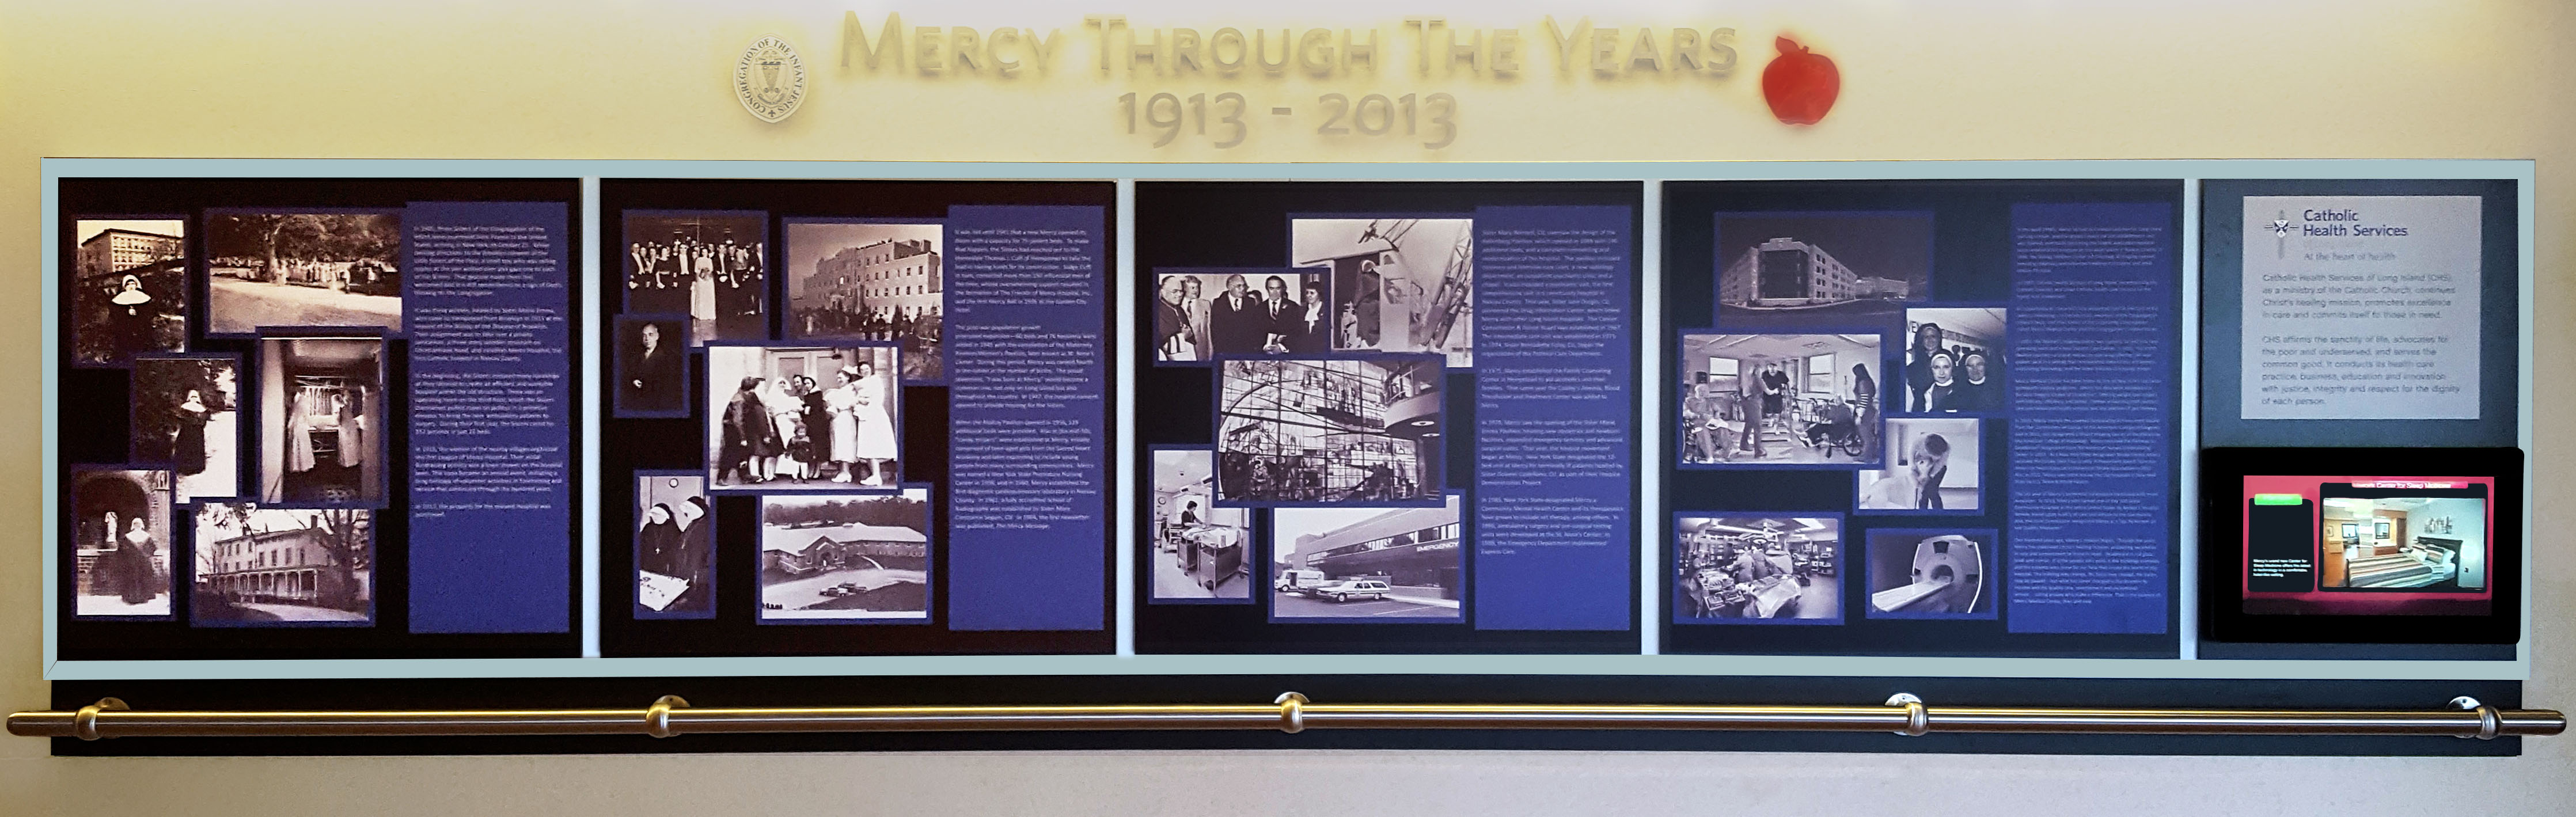 Mercy through the Years - Mercy Medical Center